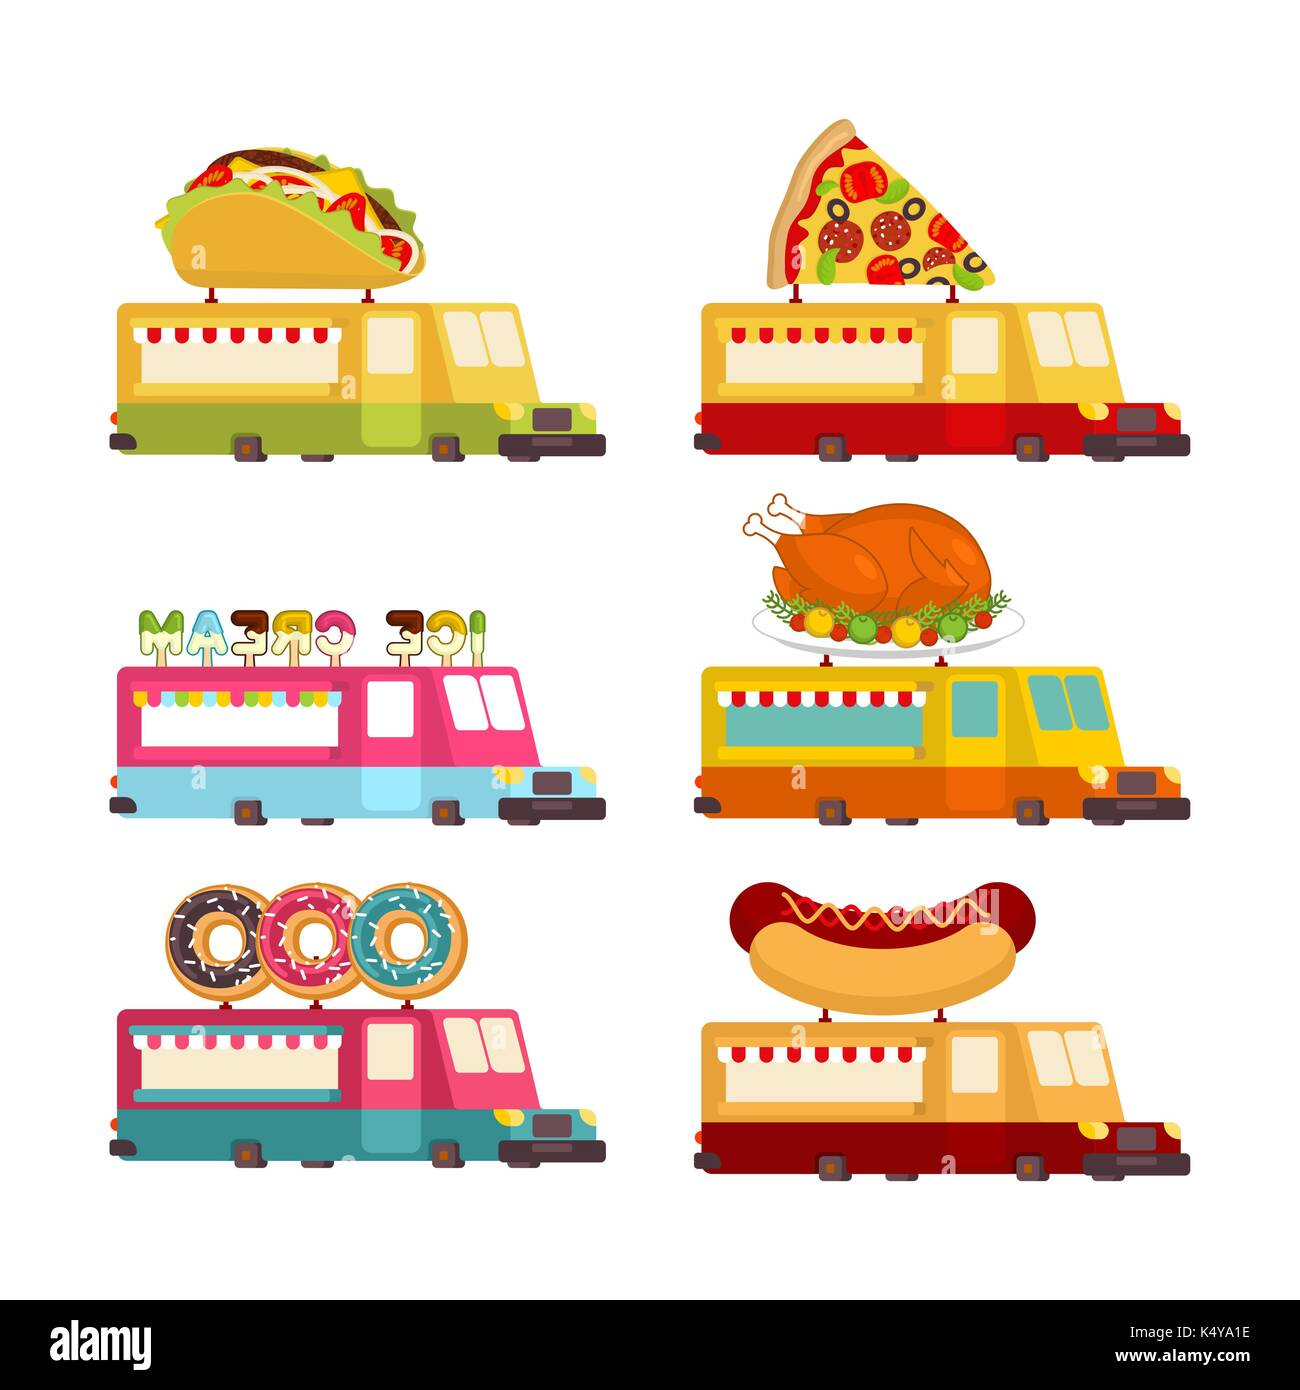 pizza delivery truck fast food stockfotos pizza delivery truck fast food bilder alamy. Black Bedroom Furniture Sets. Home Design Ideas